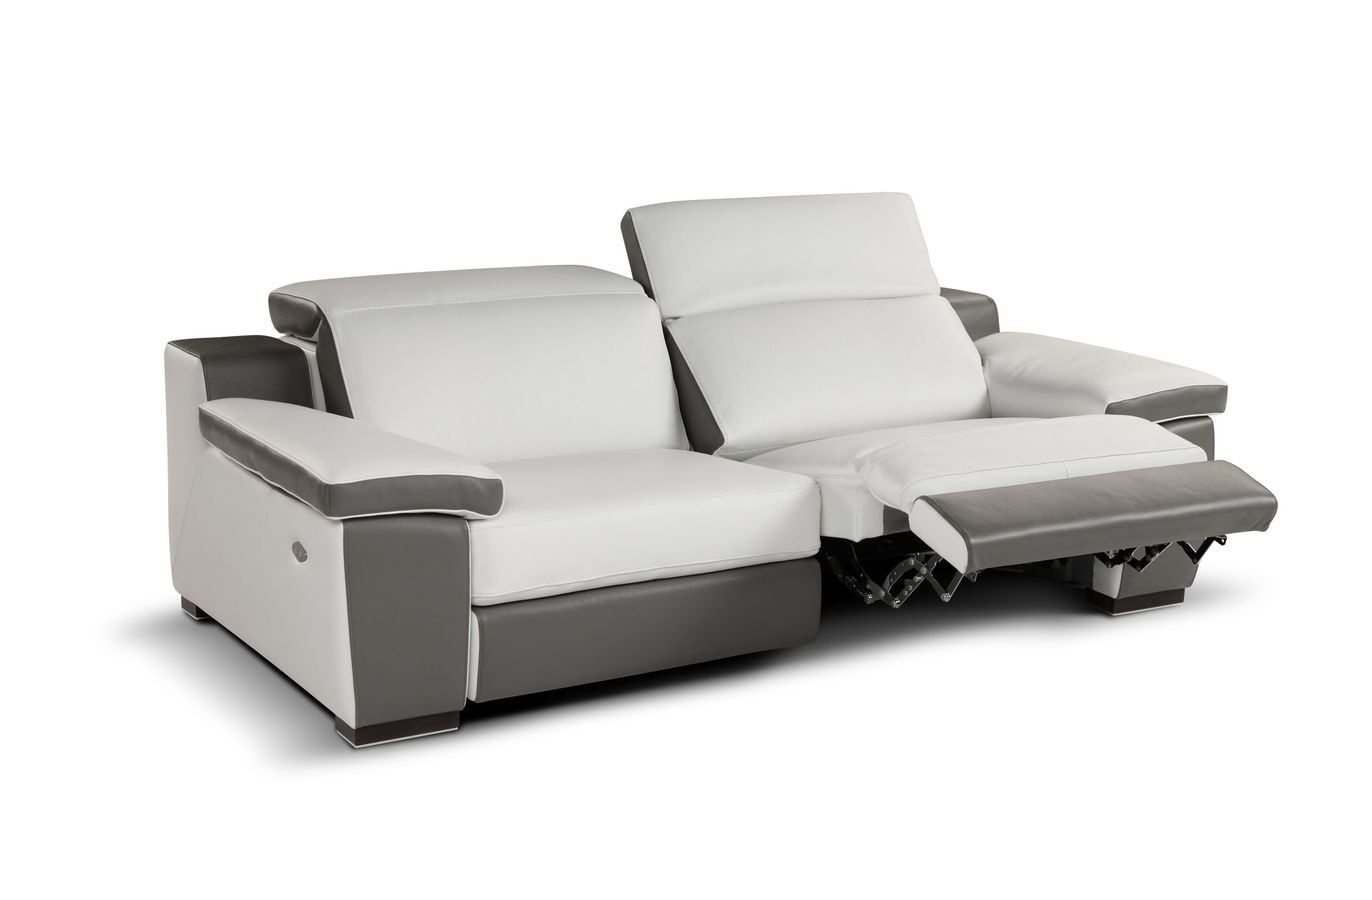 awesome Leather Recliner Sofa , Best Leather Recliner Sofa 90 For Contemporary  Sofa Inspiration with Leather